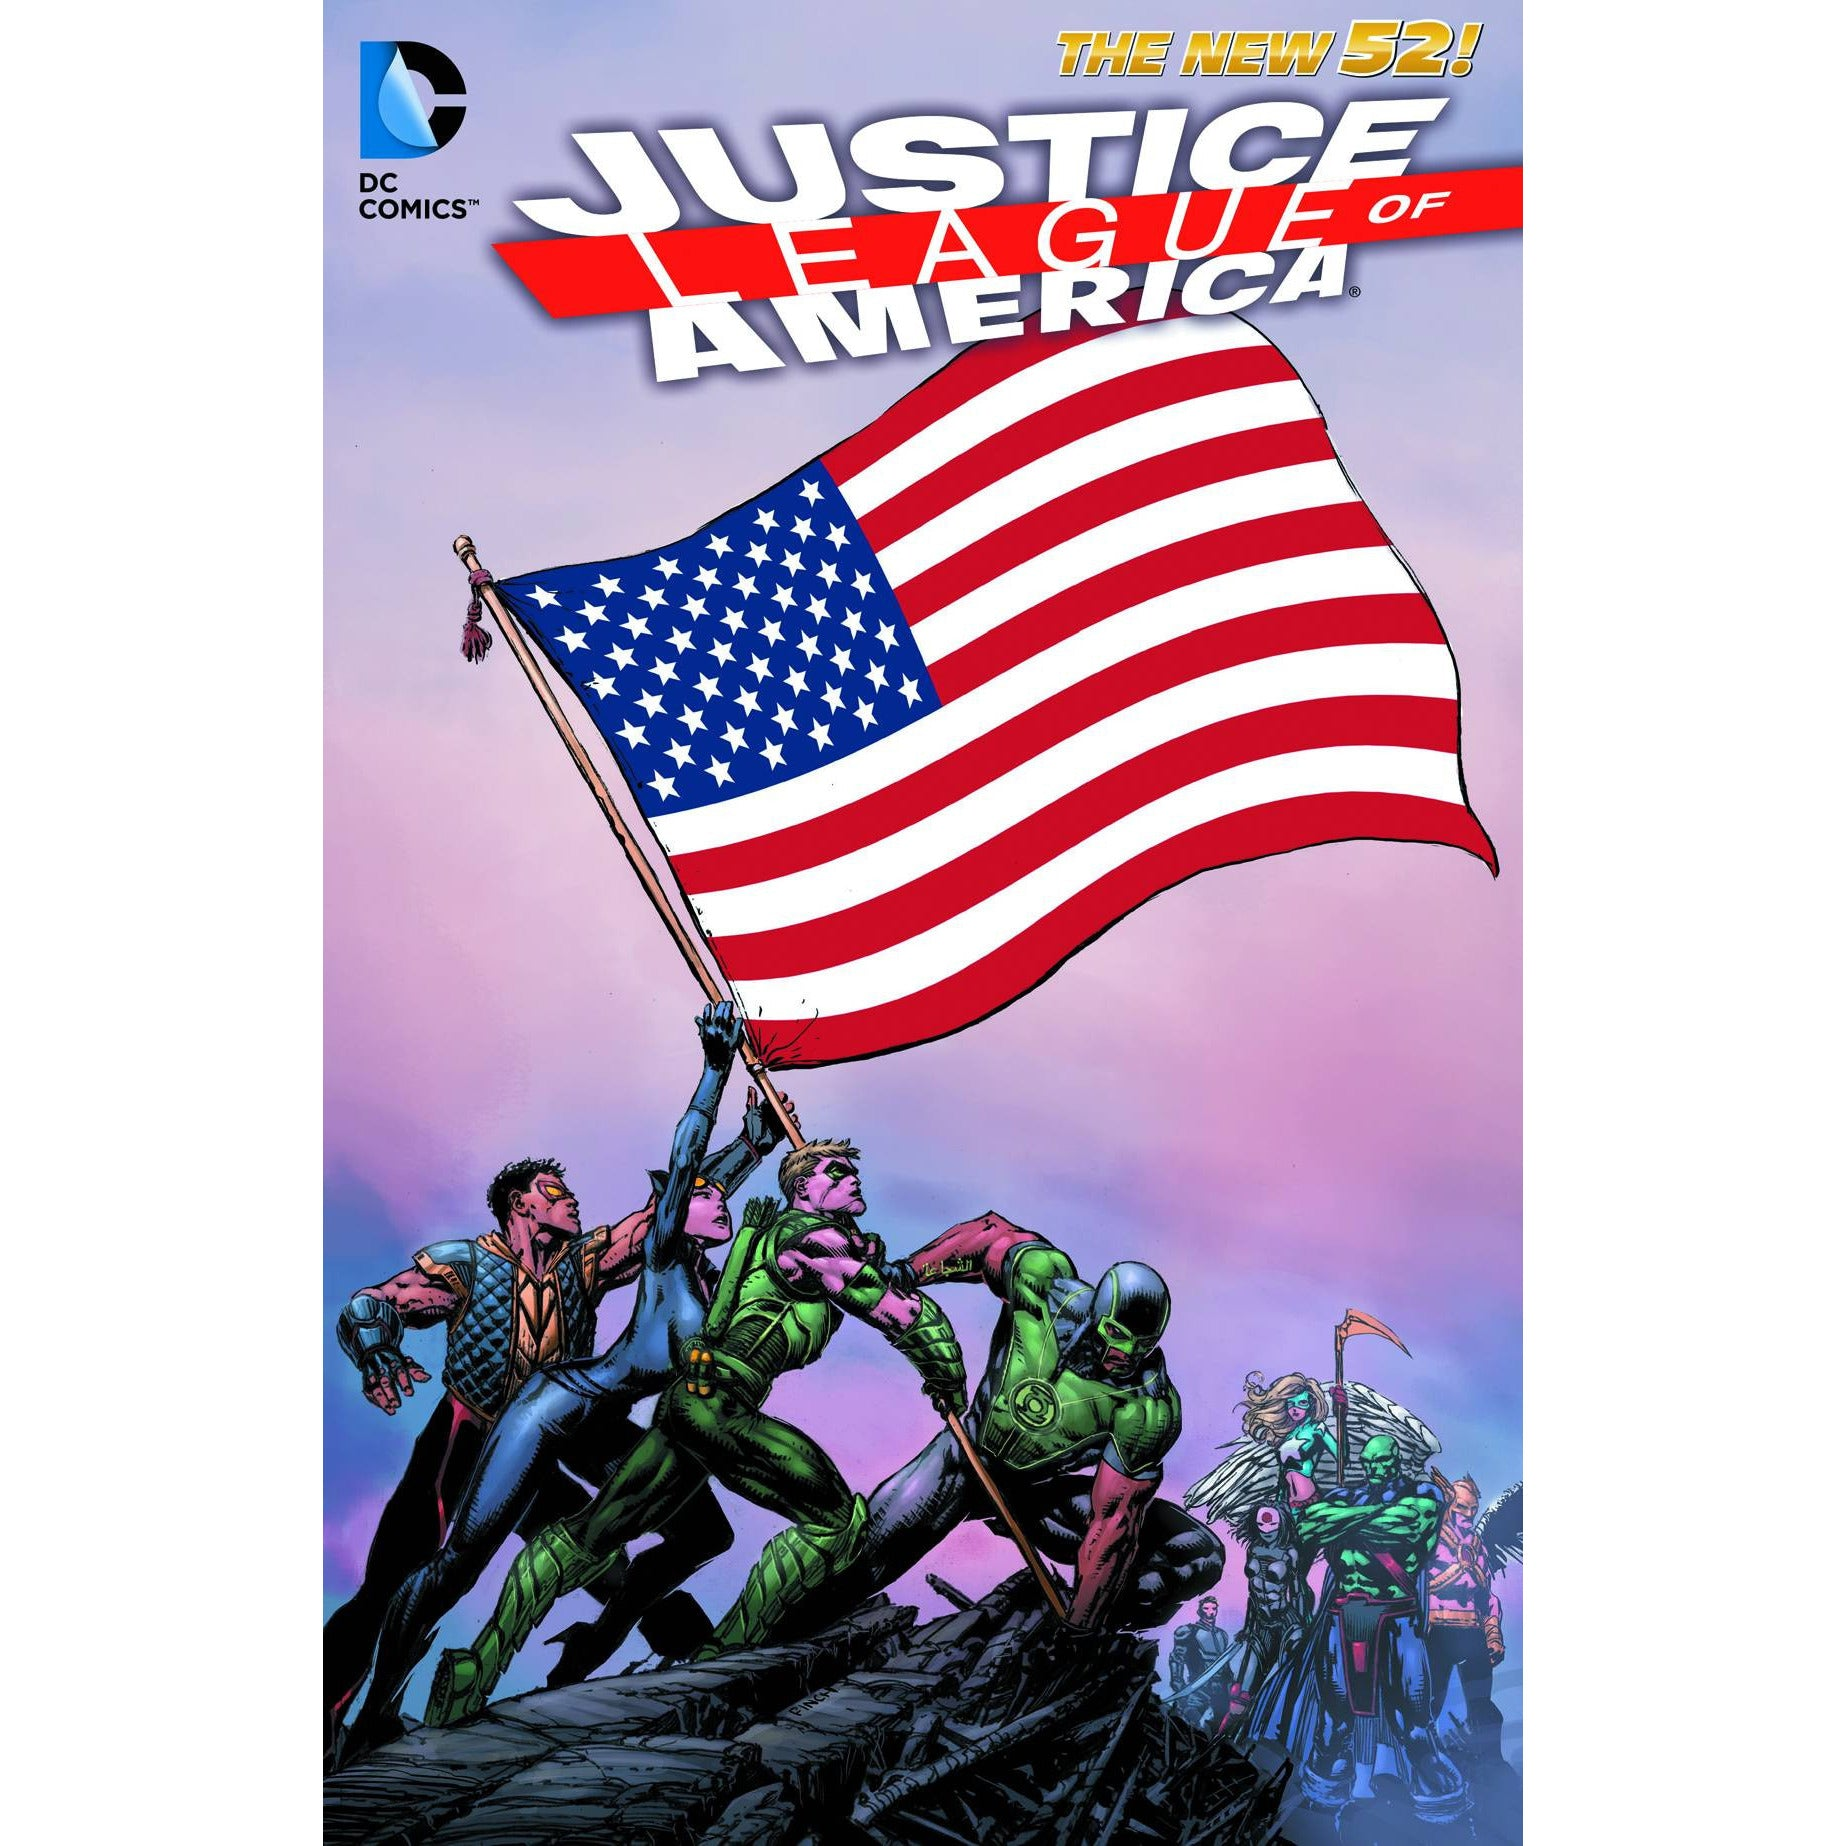 Justice League of America Vol. 1 Uncanny!